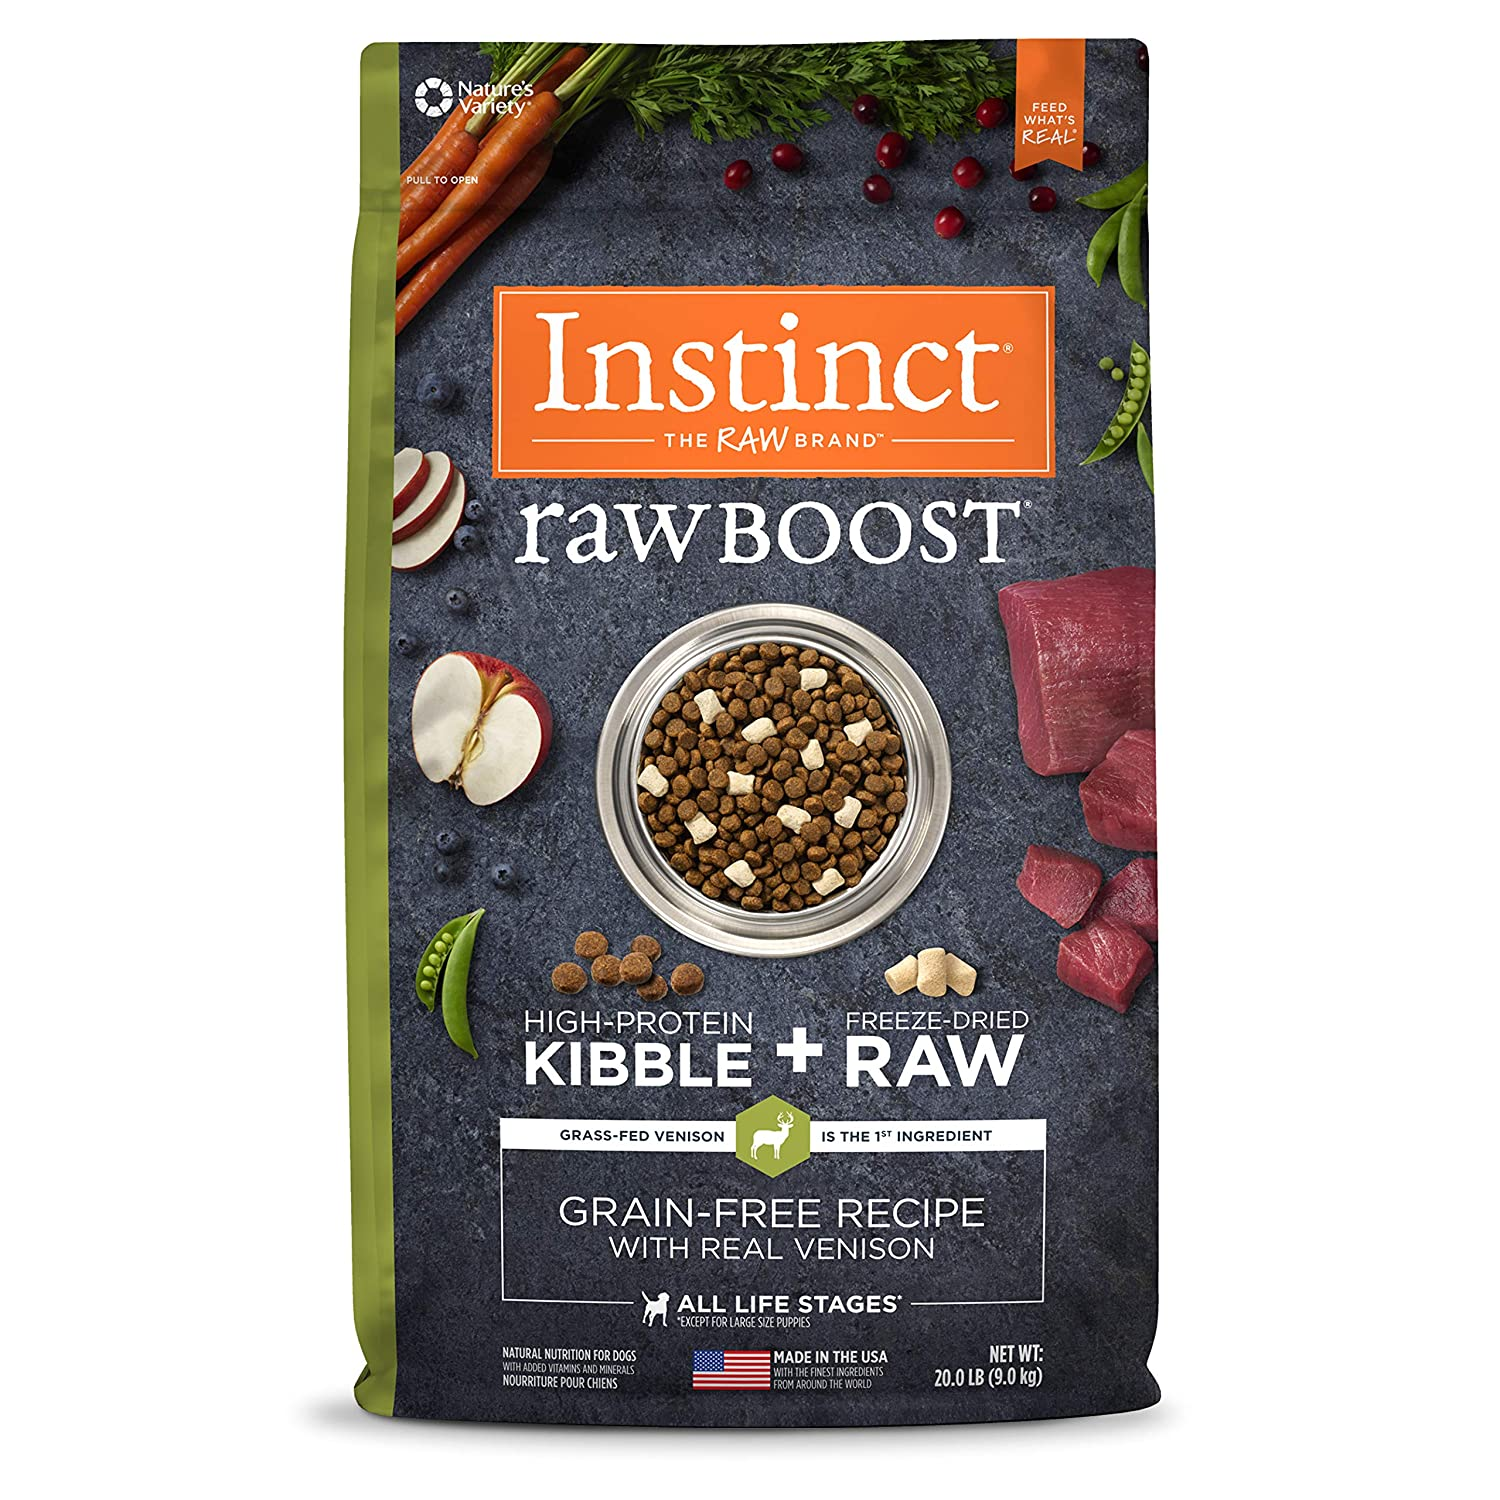 20 lb. Bag Instinct Raw Boost Grain Free Recipe with Real Venison Natural Dry Dog Food by Nature's Variety, 20 lb. Bag